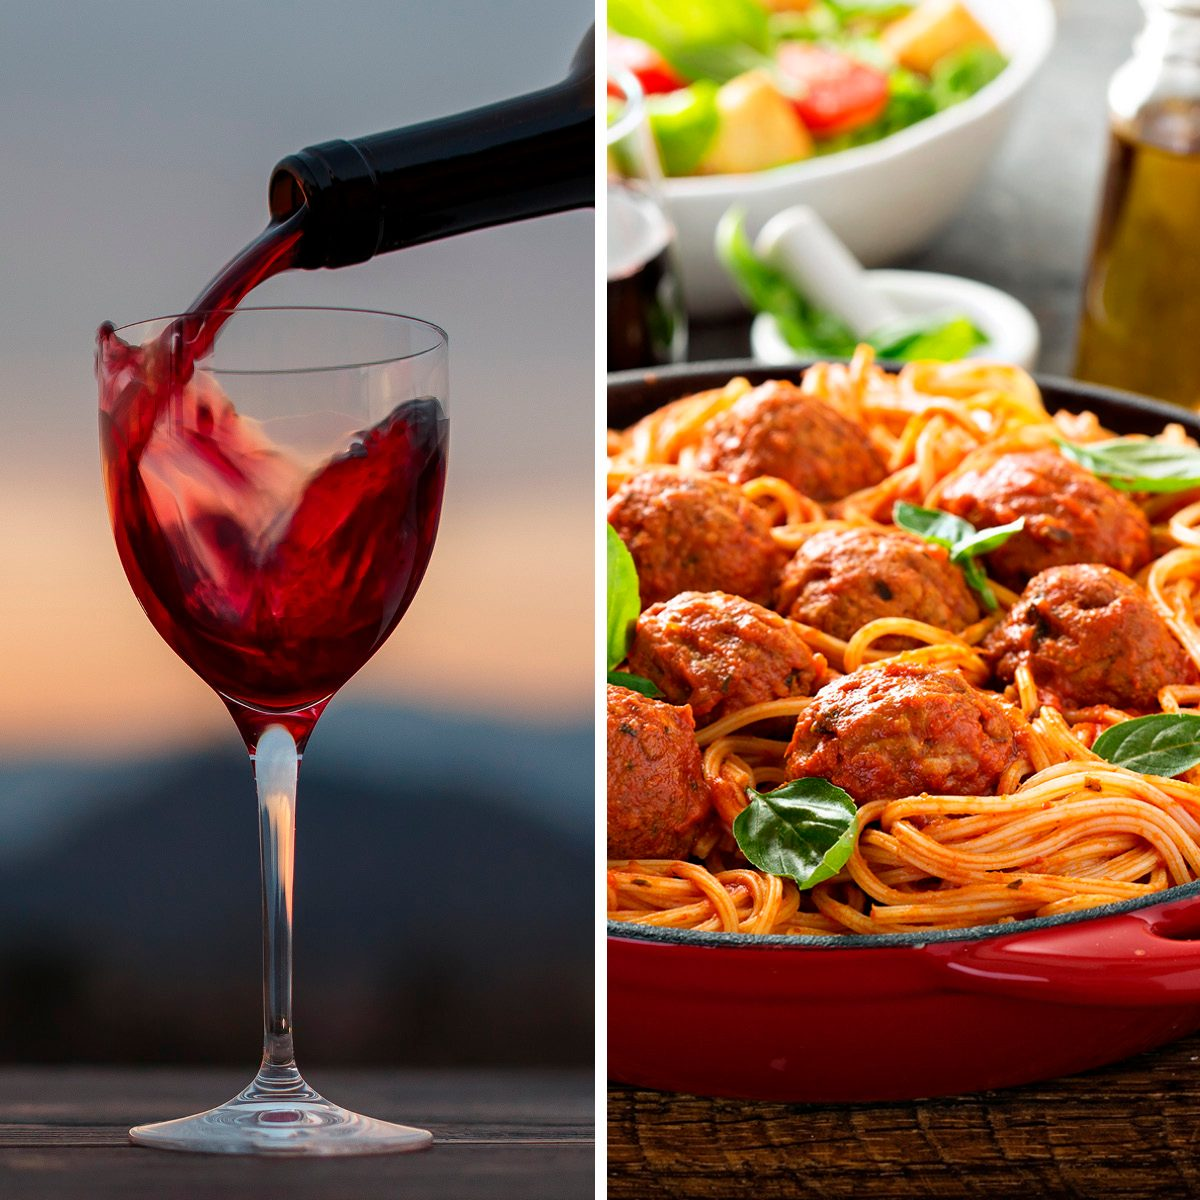 alcohol; background; barbera; beverage; blurry; bordeaux; bottle; burgundy; cabernet; closeup; drink; glass; gourmet; liquid; merlot; mountains background; old; open; outdoor; pinot noir; red; restaurant; sangiovese; sauvignon; sunset background; taste; wine; wineglass Spaghetti with tomato sauce and meatballs, fresh vegetable salad and red wine; Shutterstock ID 635370086; Job (TFH, TOH, RD, BNB, CWM, CM): TOH